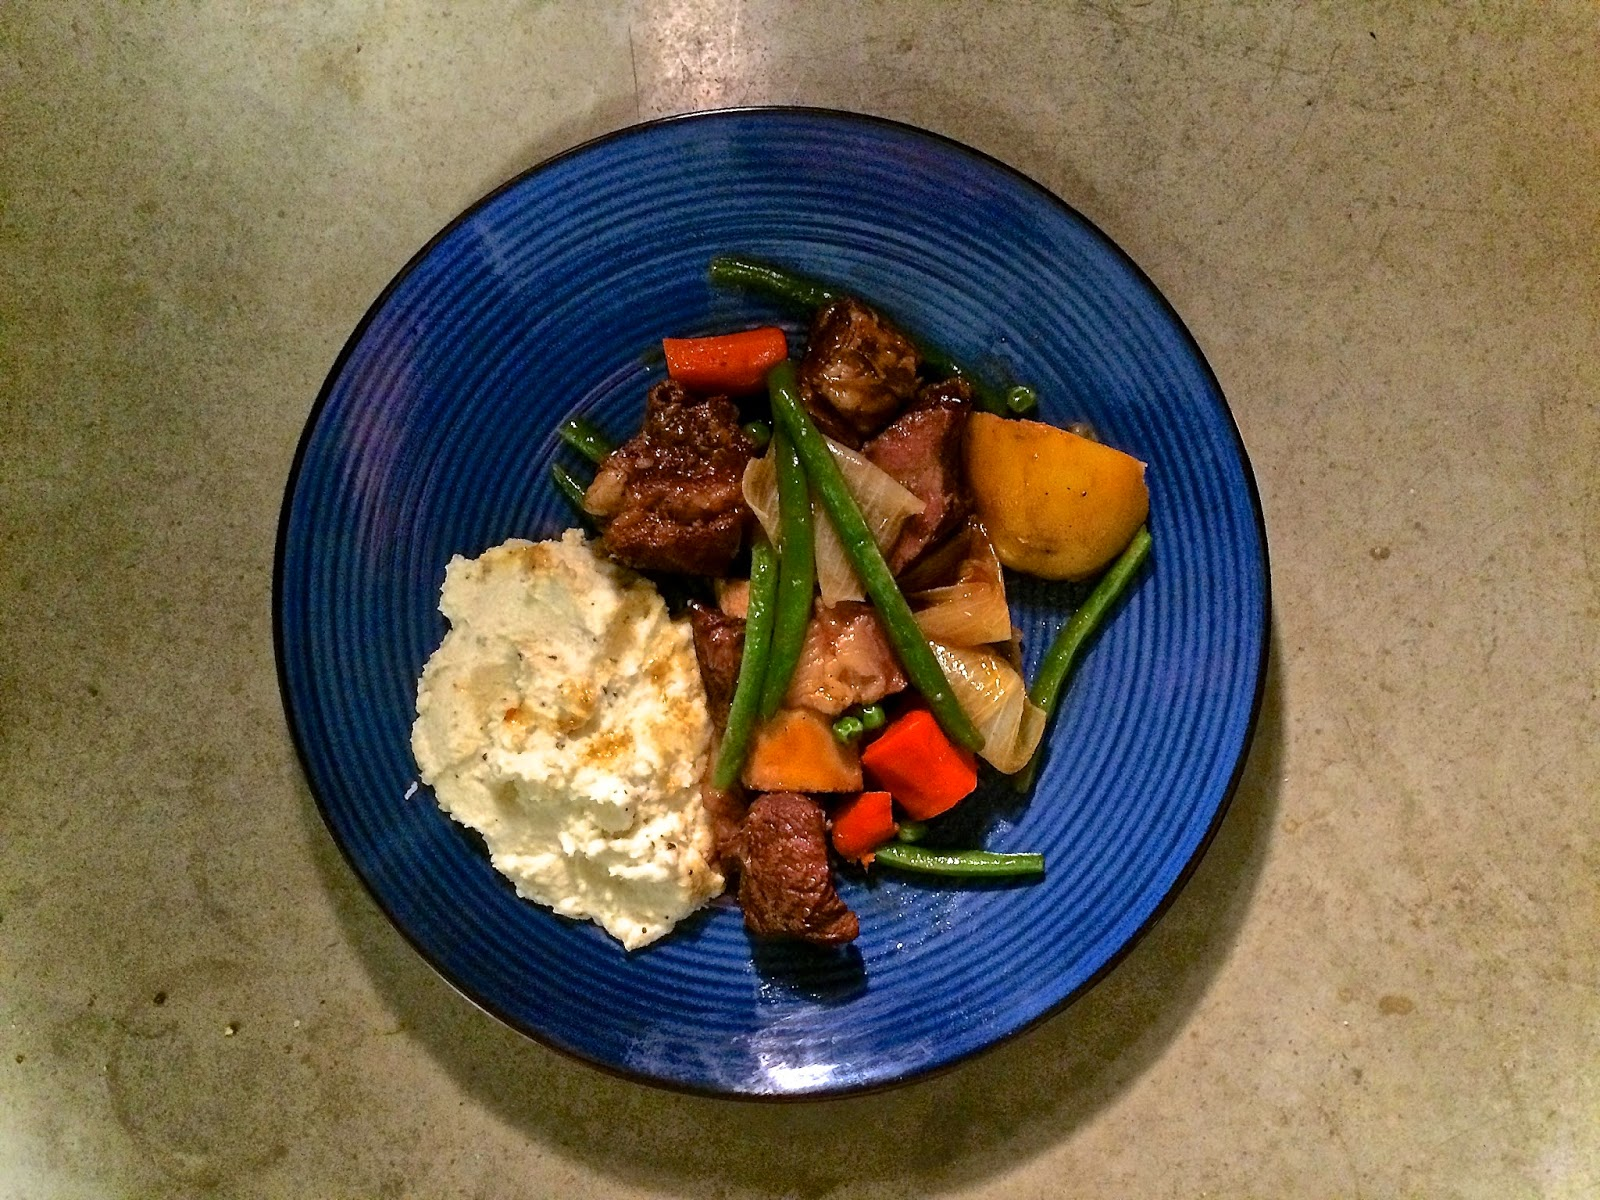 Marty Nation's Short Ribs and Whipped Cauliflower